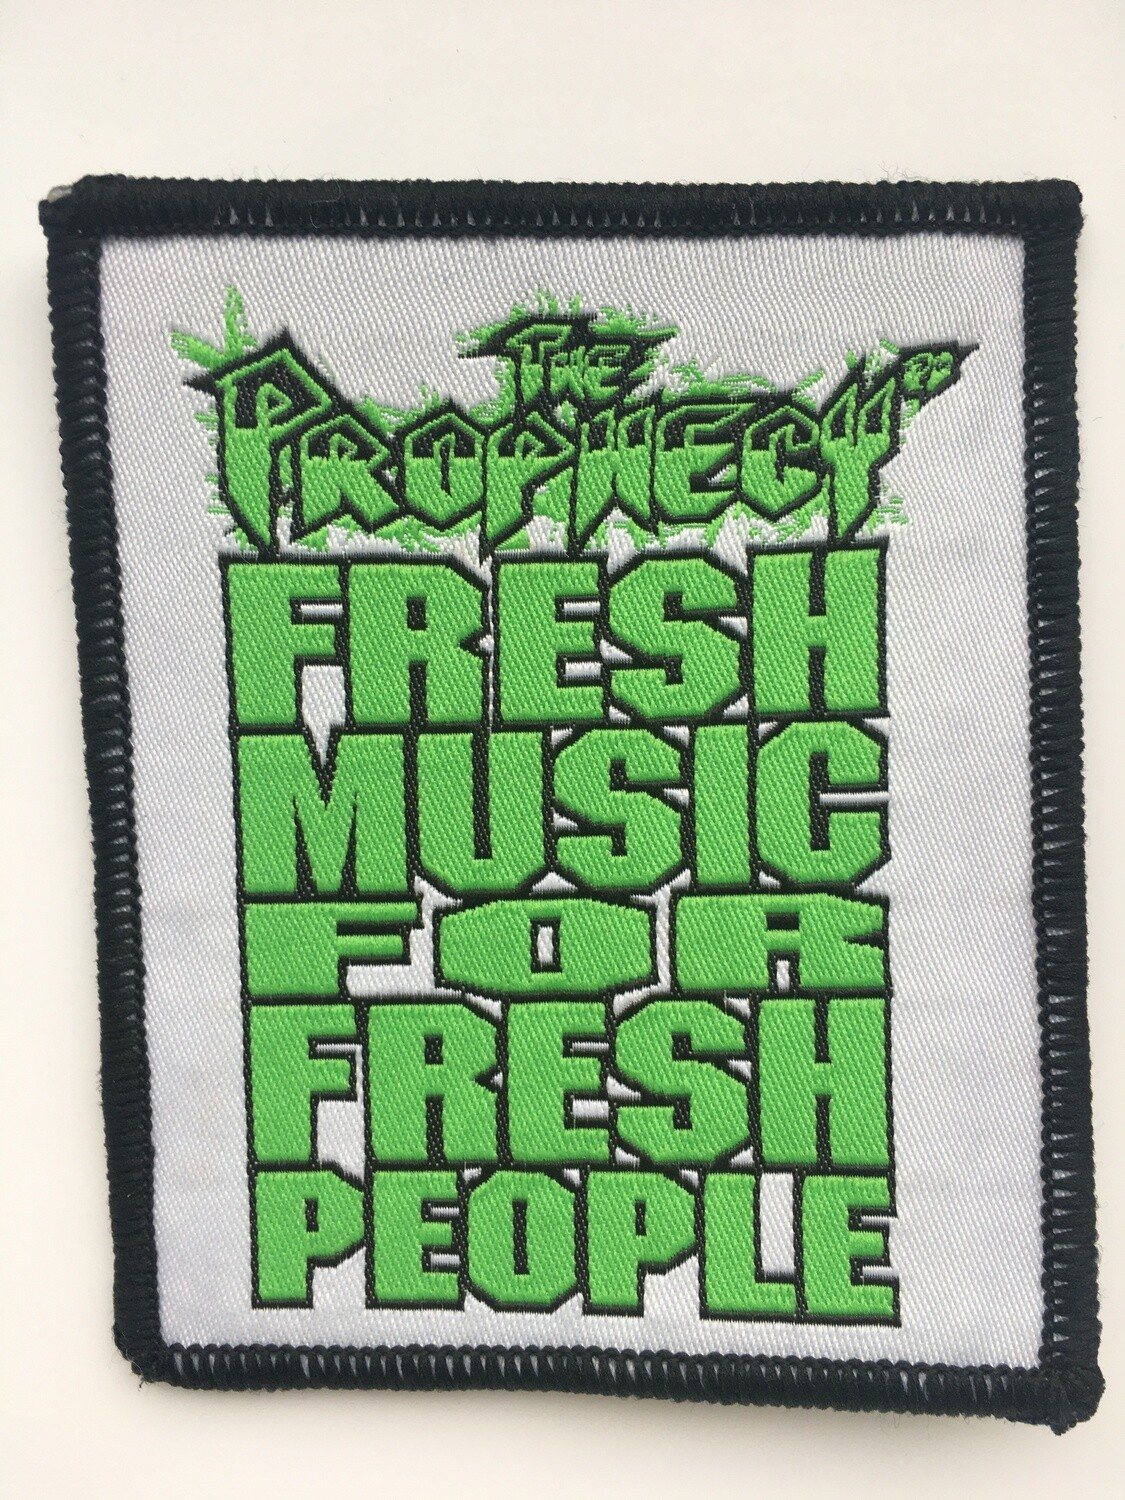 Patch - Fresh Music For Fresh People